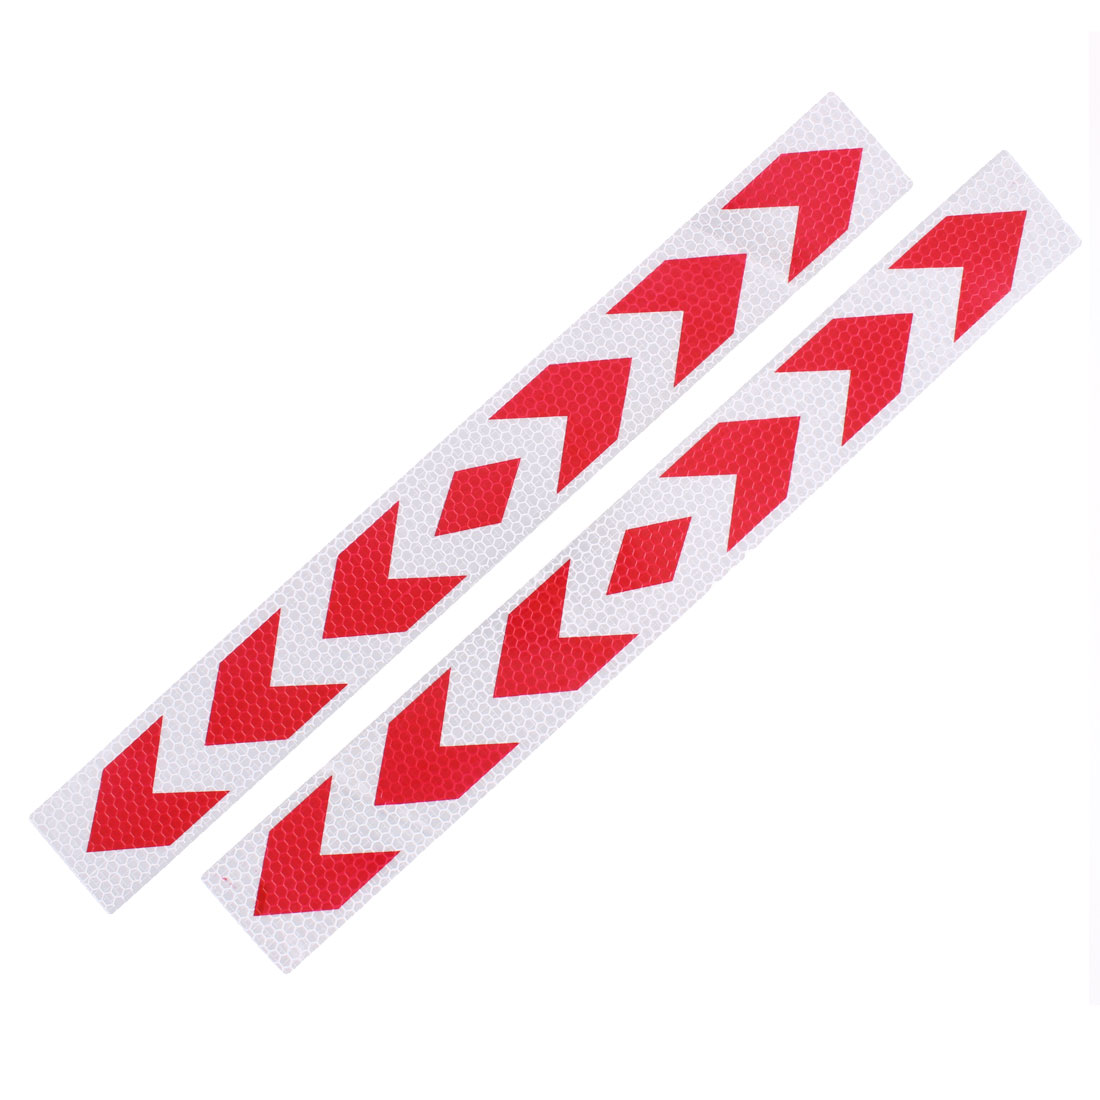 2 Pcs Arrows Printed Self Adhesive Type Car Reflective Warning Sign Sticker Tape Red White